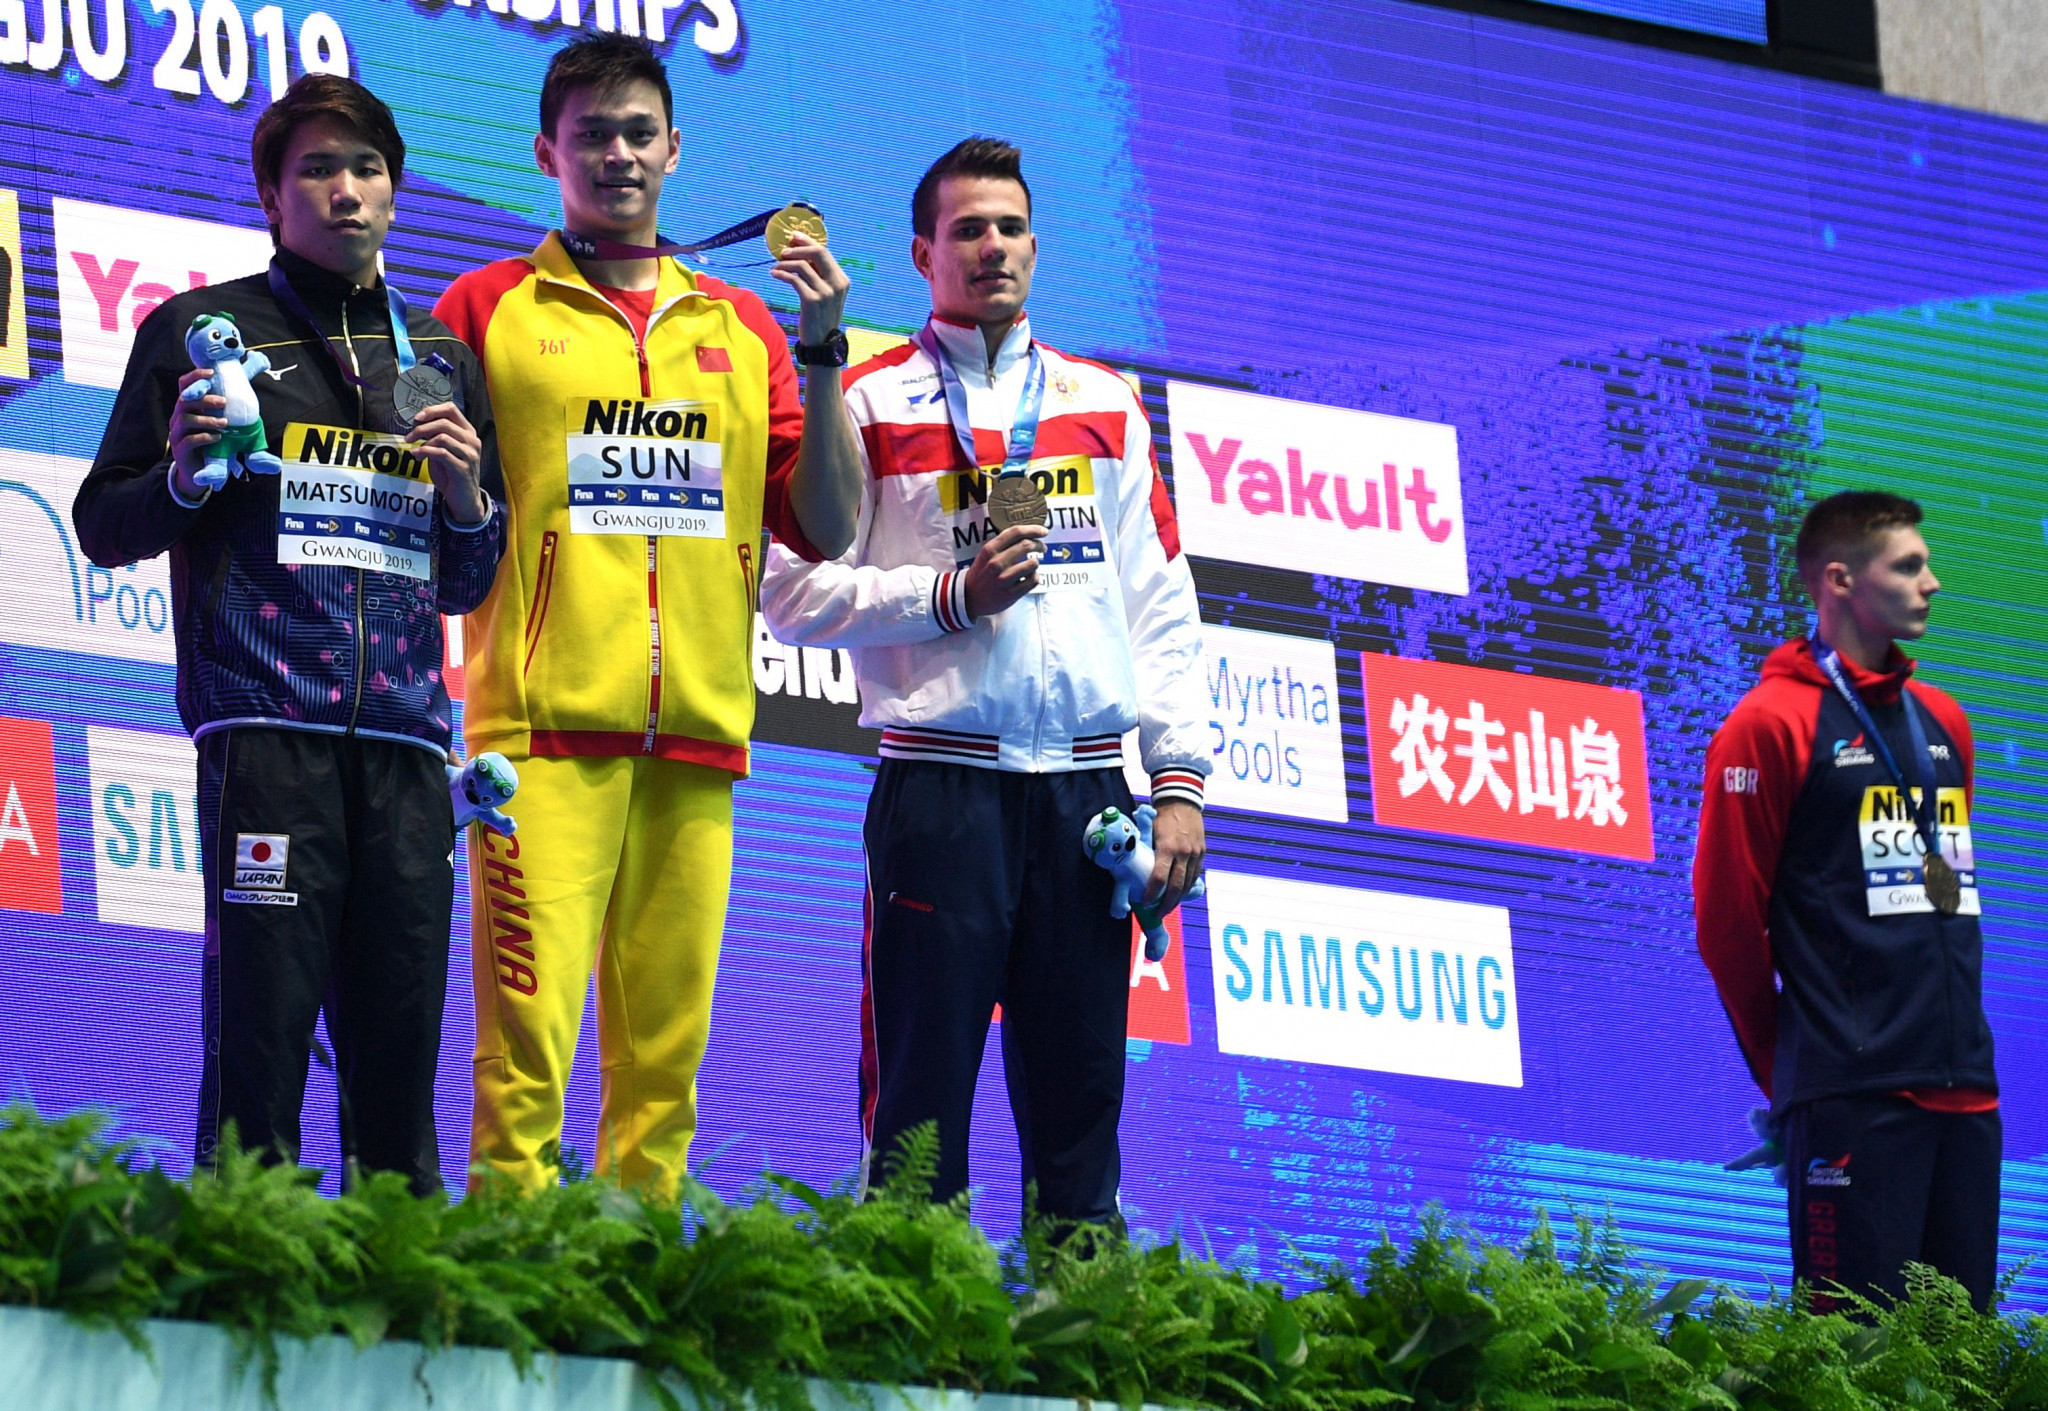 Duncan Scott refused to pose for photographs with Sun Yang ©Getty Images